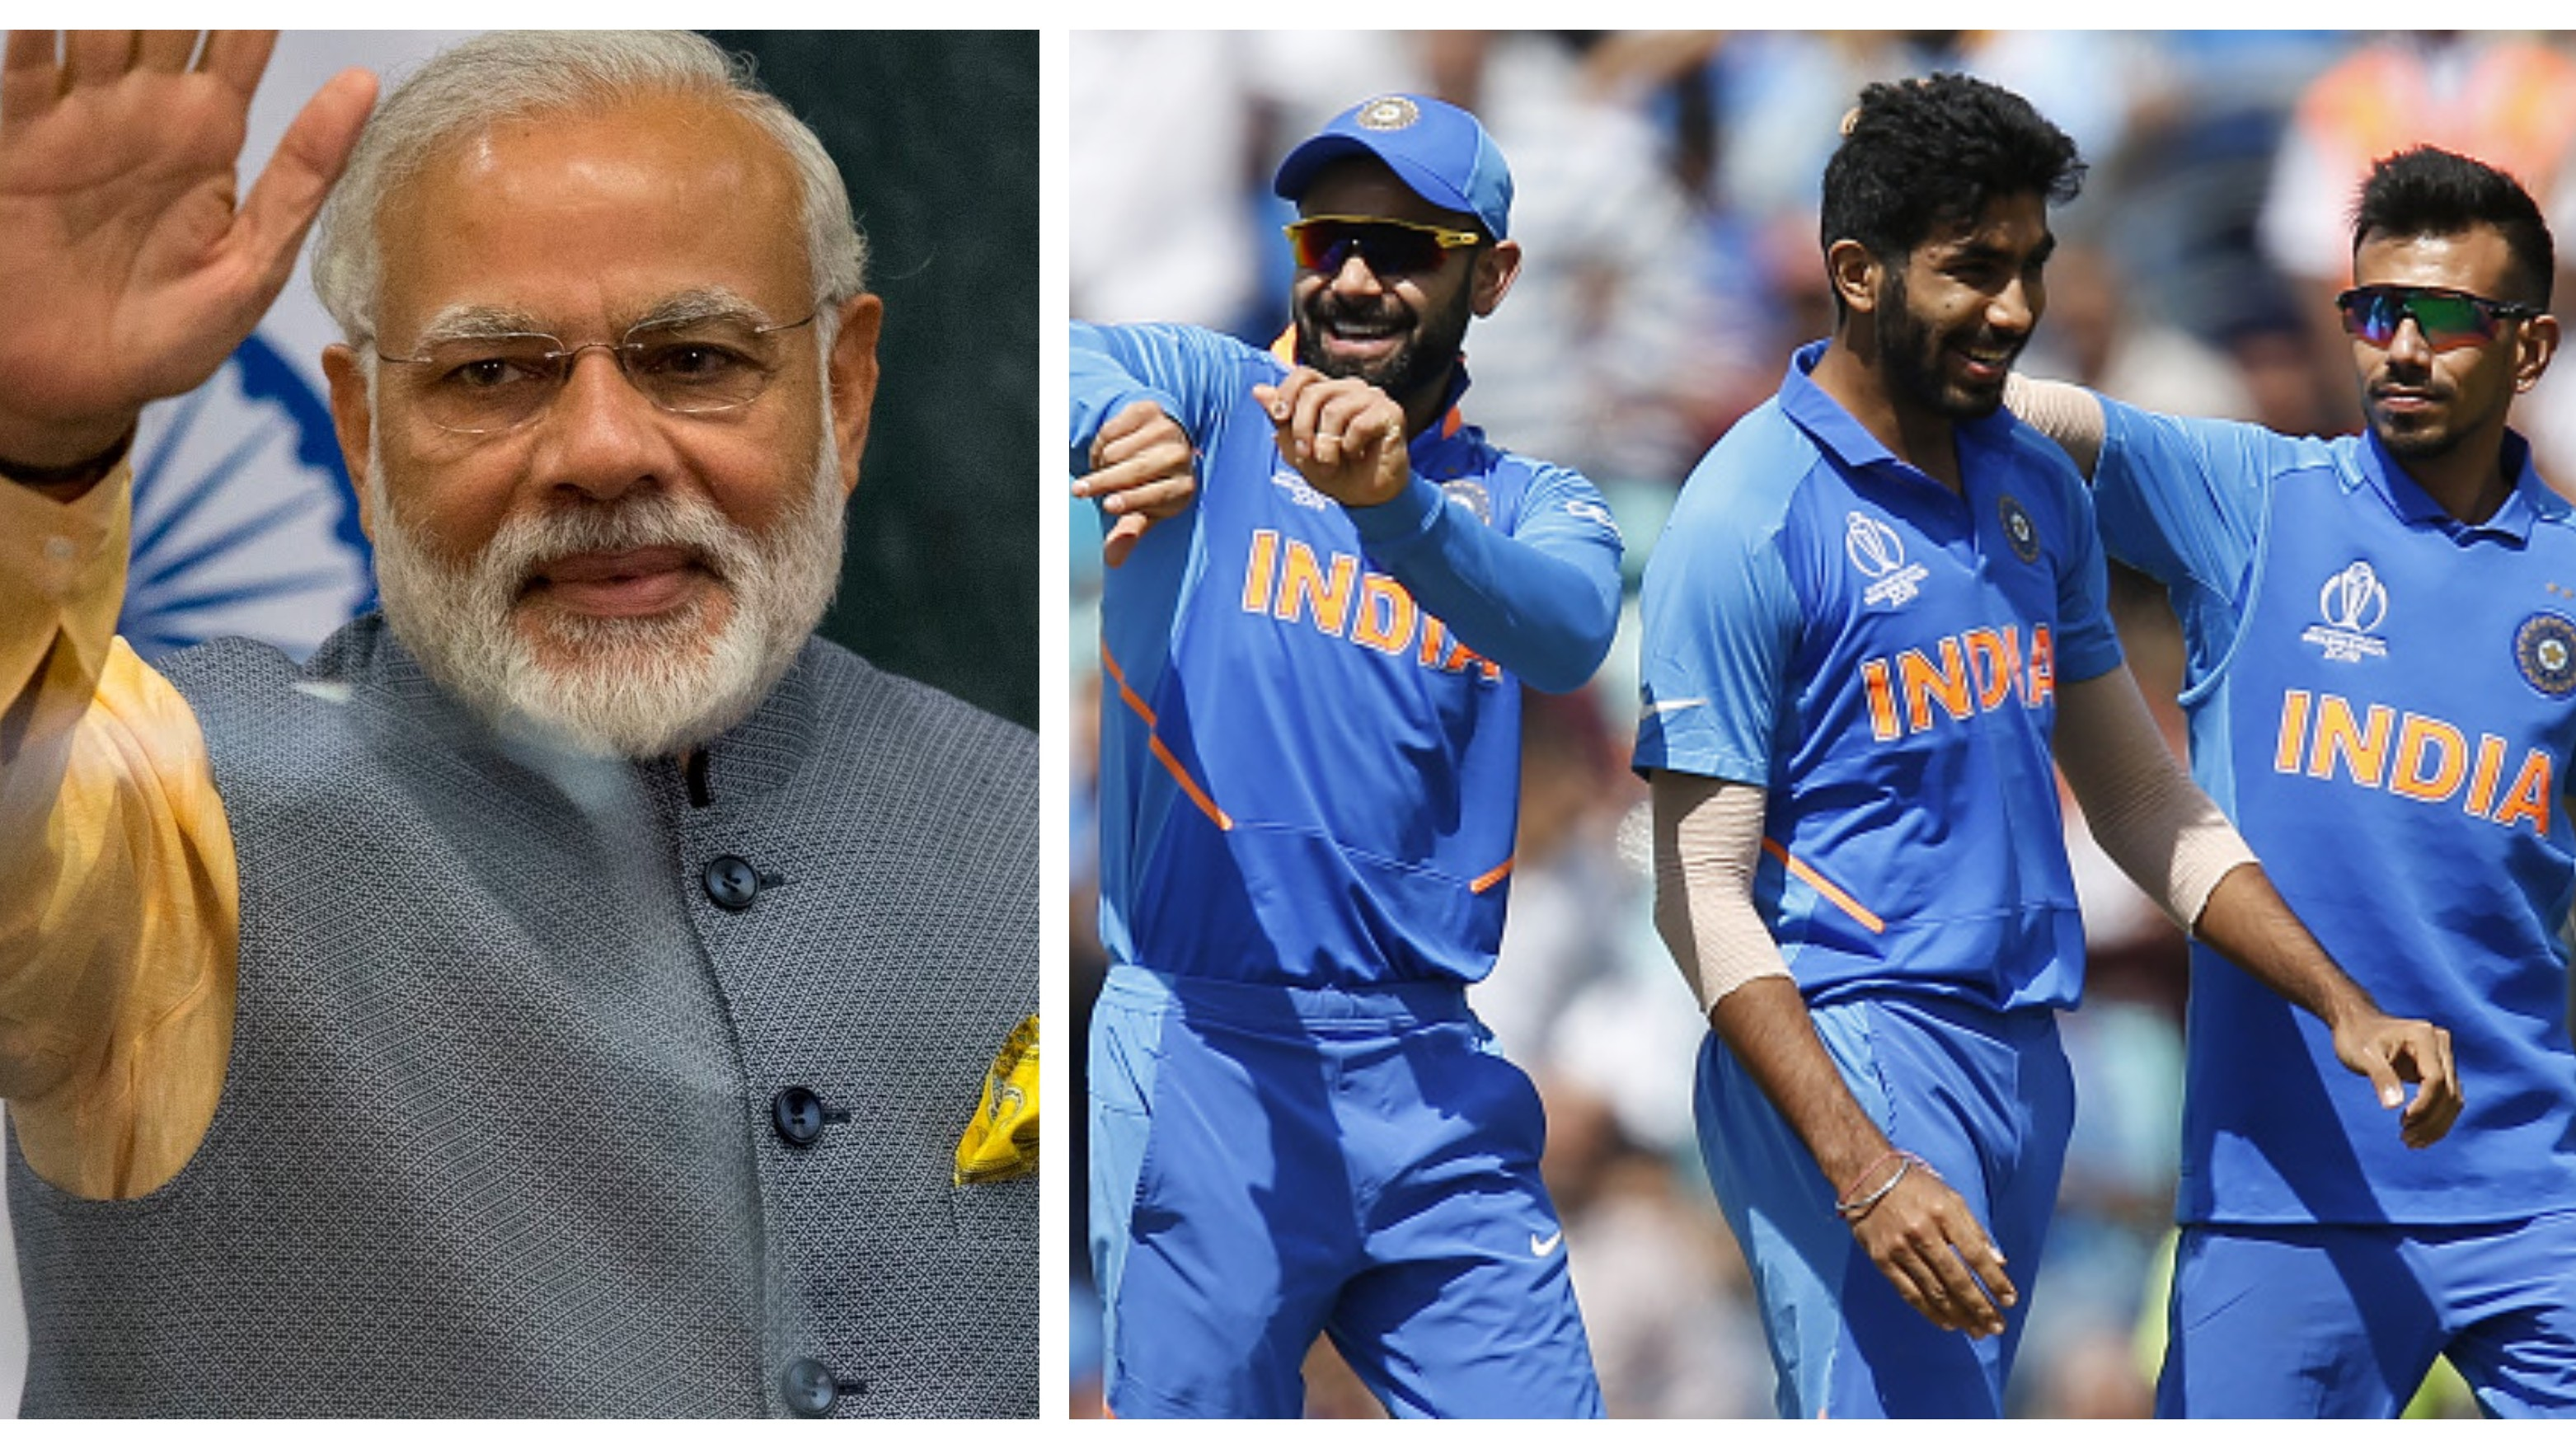 CWC 2019: PM Narendra Modi wishes Virat Kohli and Team India all the best for World Cup